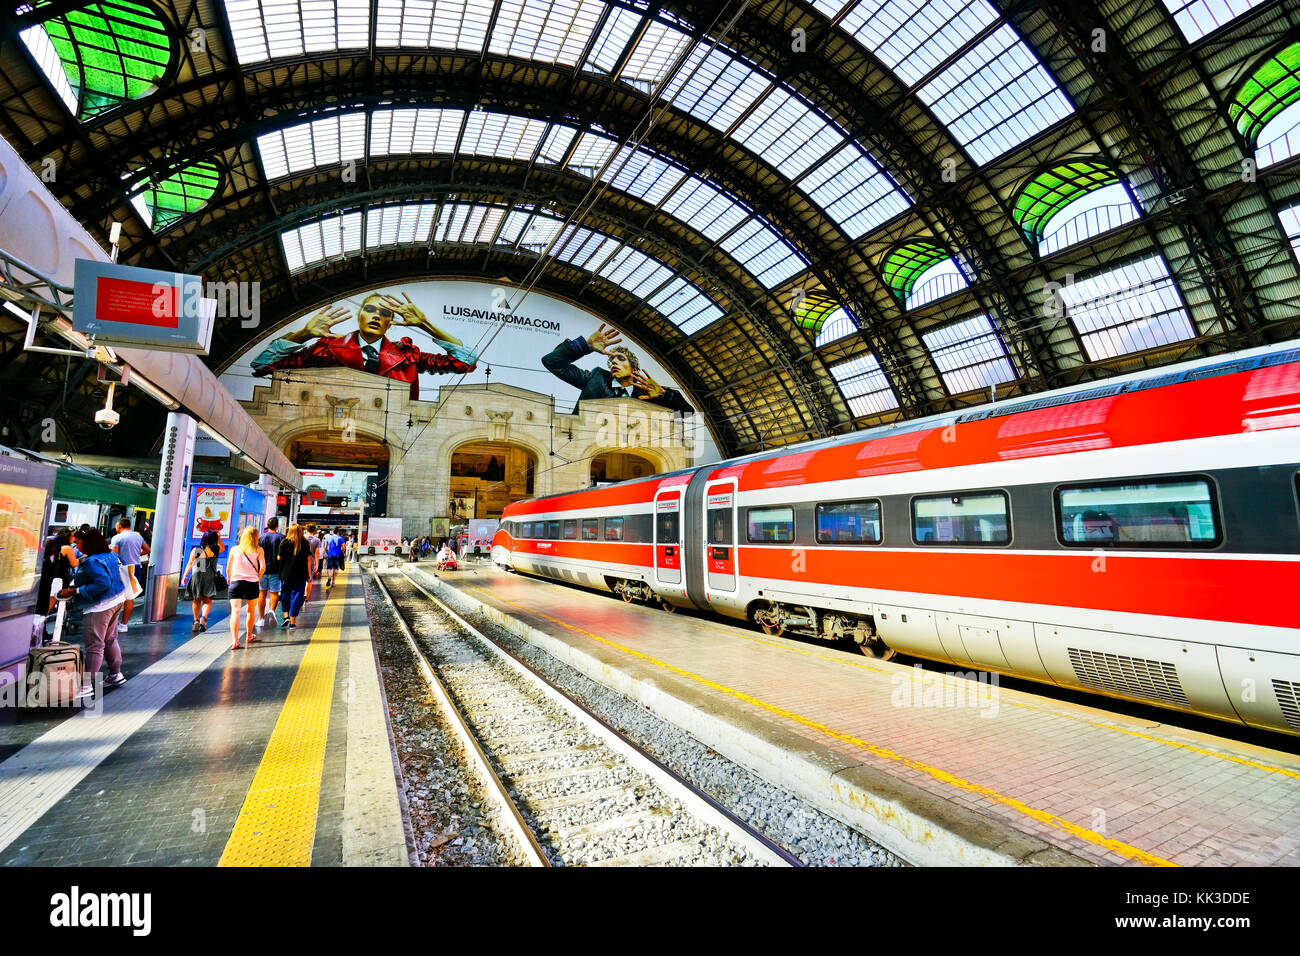 View of the High-speed train at Milano Centrale railway station in Milan on September 7, 2016. - Stock Image